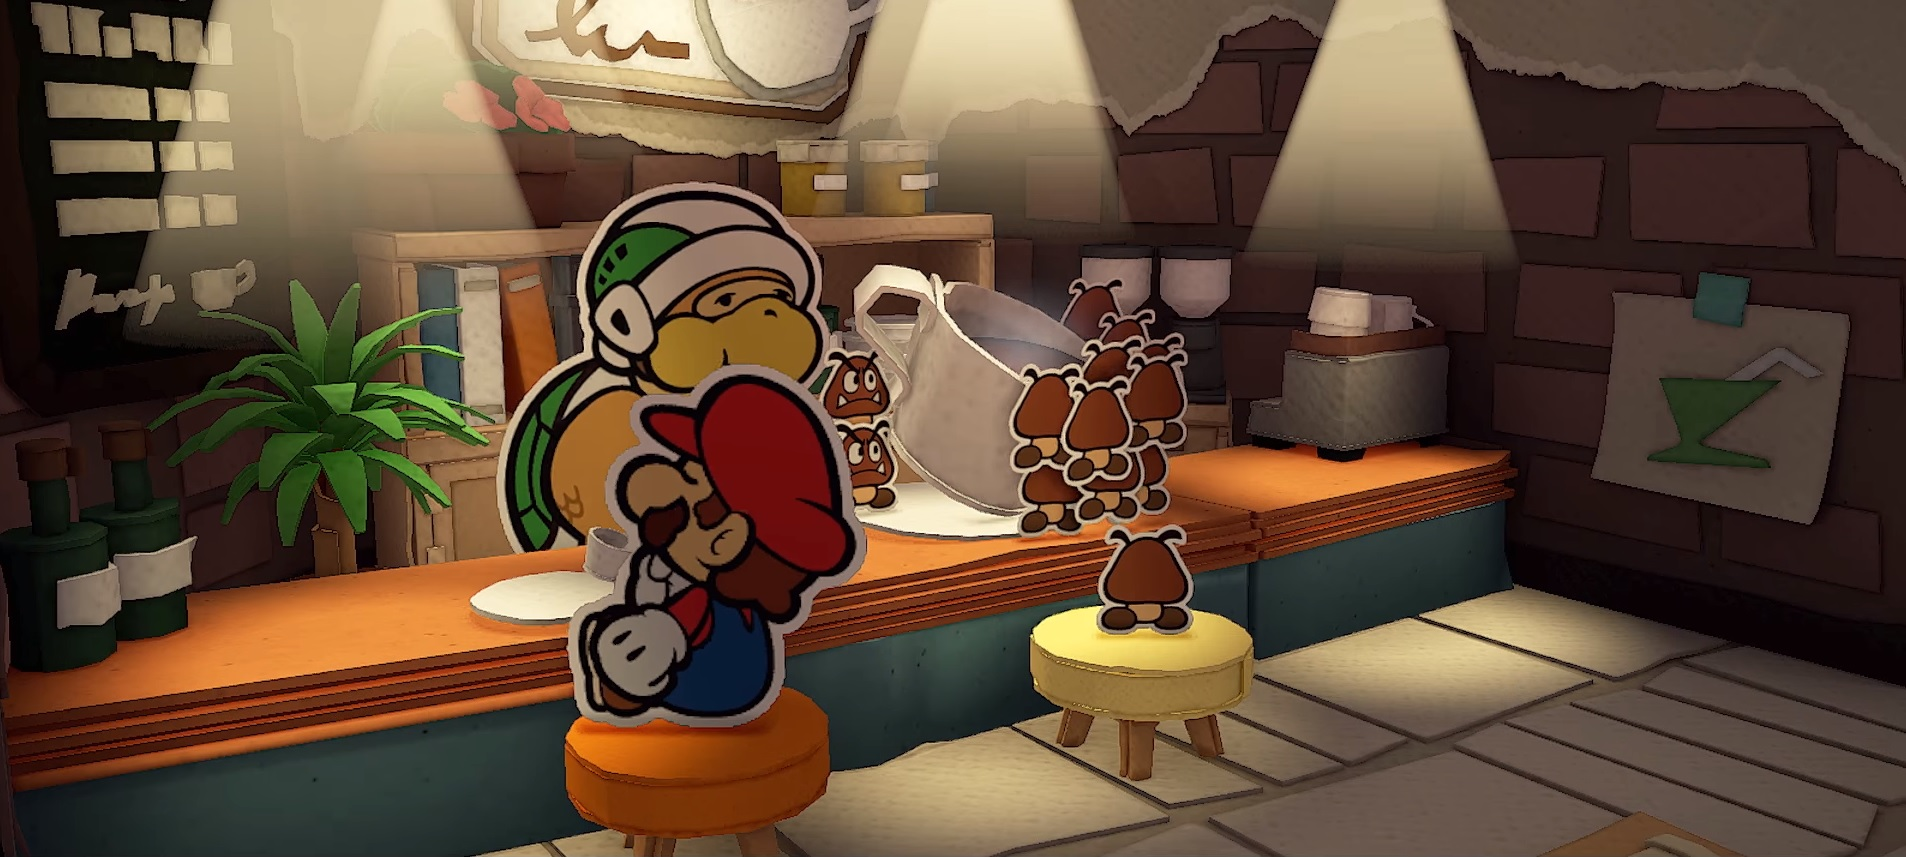 All the little details about Paper Mario: The Origami King are starting to unfold screenshot